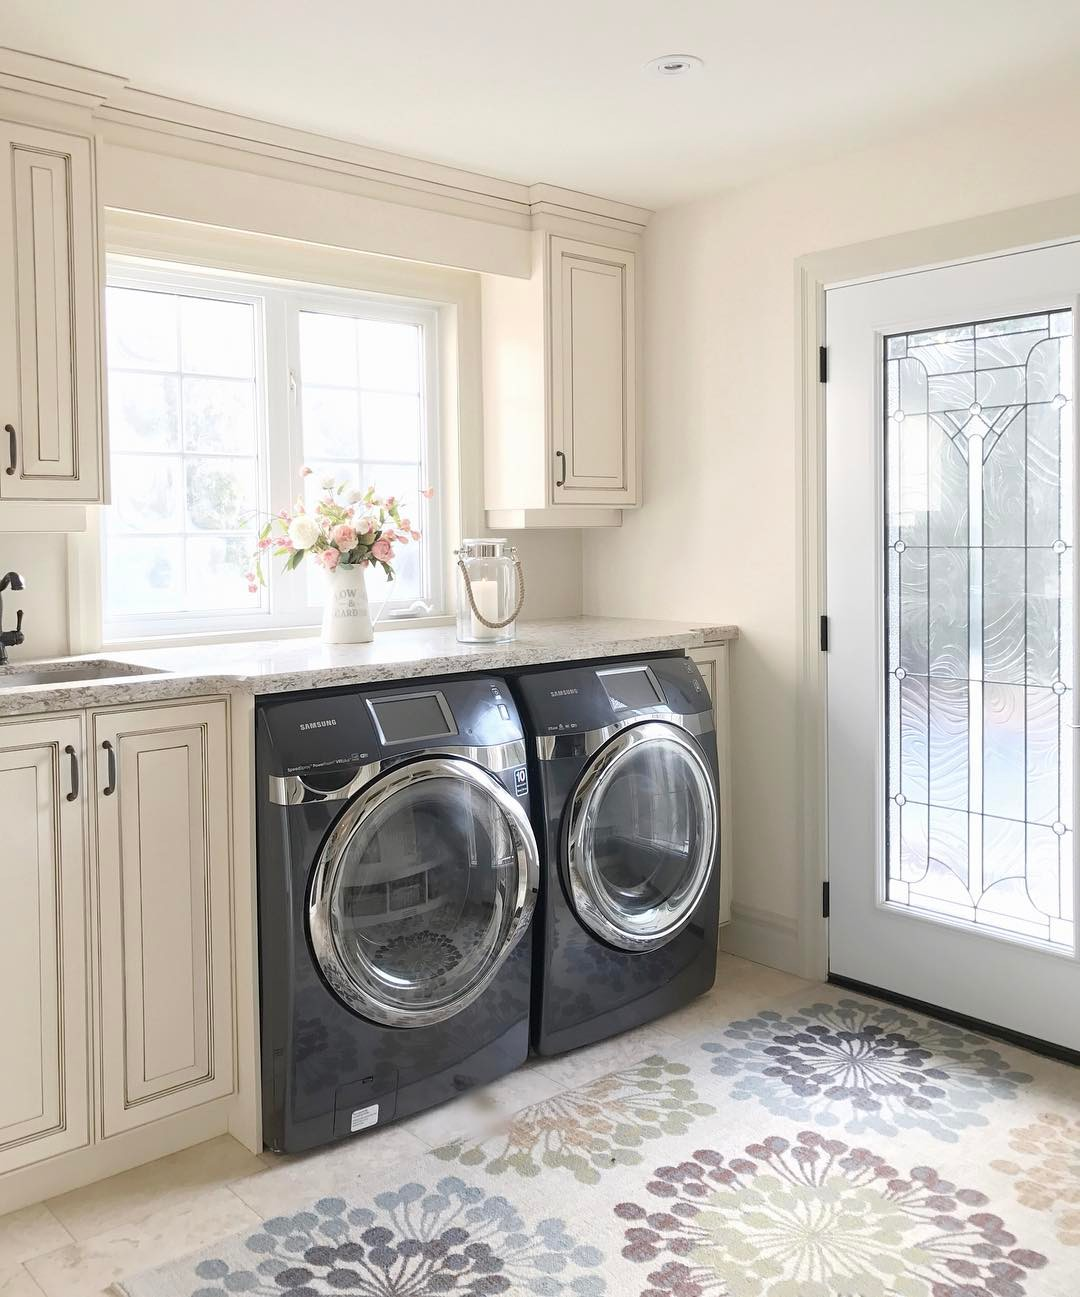 Lighten your load with cute (and cheeky) wall decor for your laundry room. Affordable and Simple Laundry Room Decorating Ideas